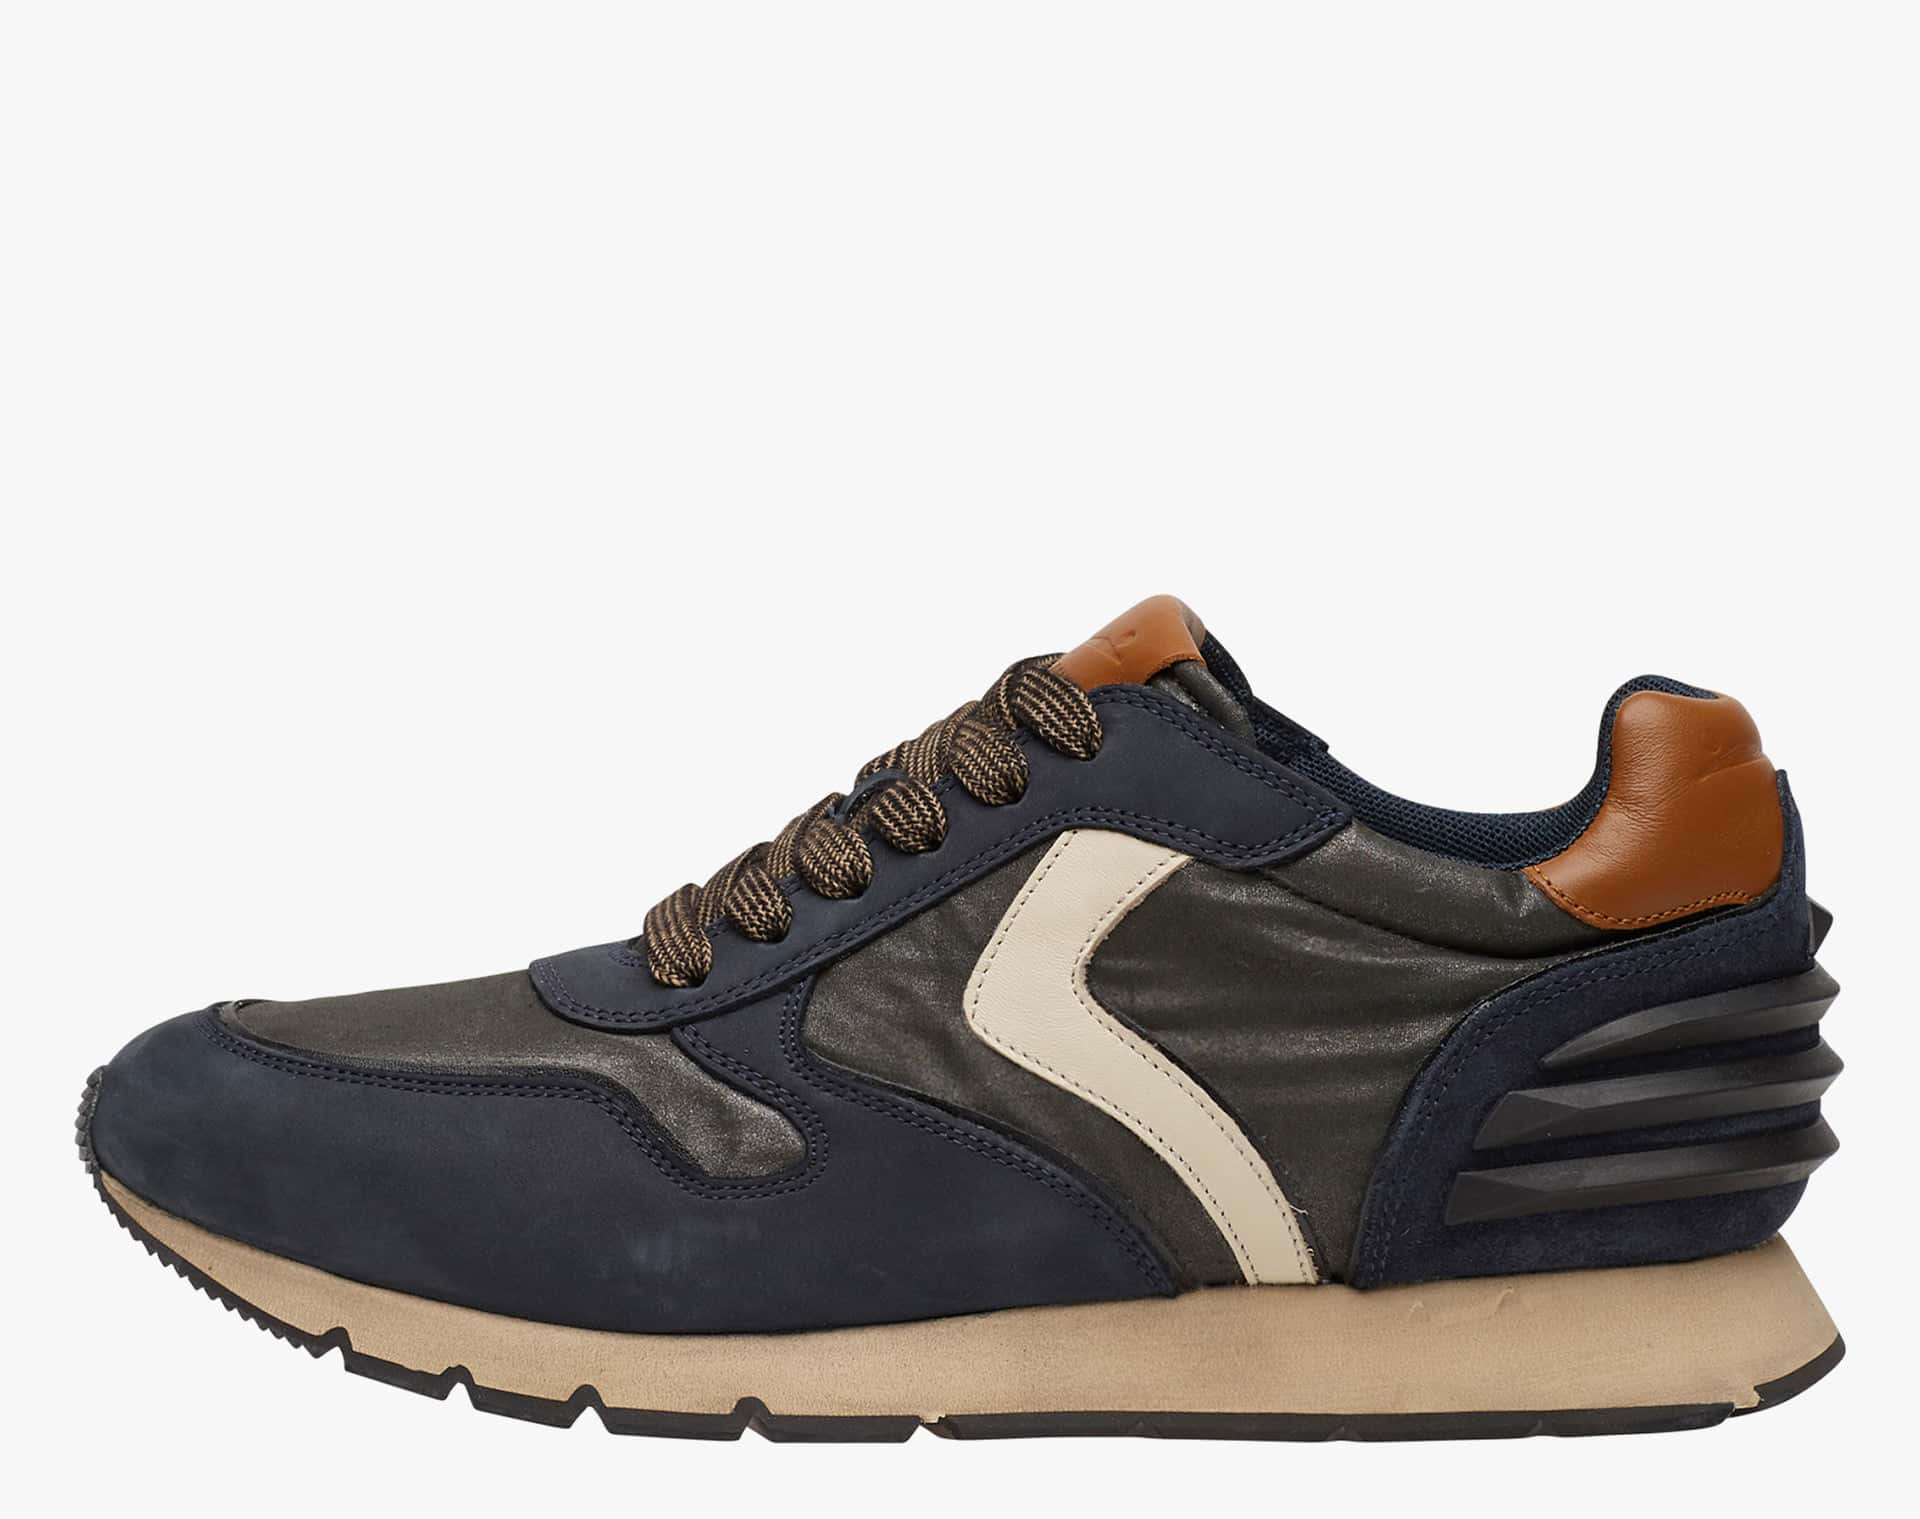 LIAM POWER - Leather sneakers - BLUE-BLACK-DENIM BLUE